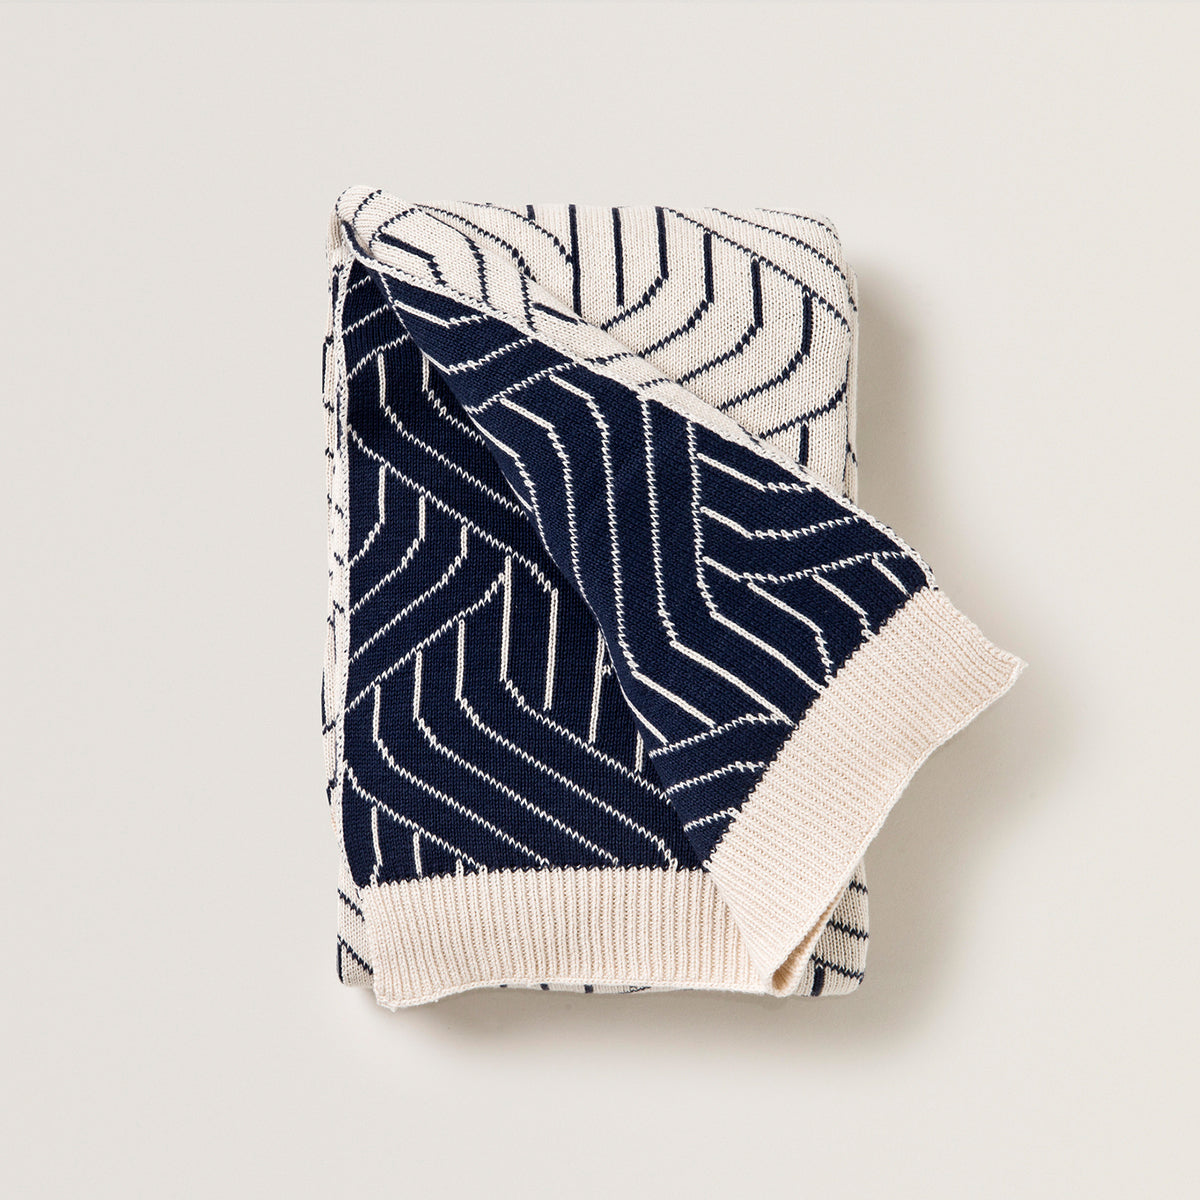 Strada Cotton Baby Blanket